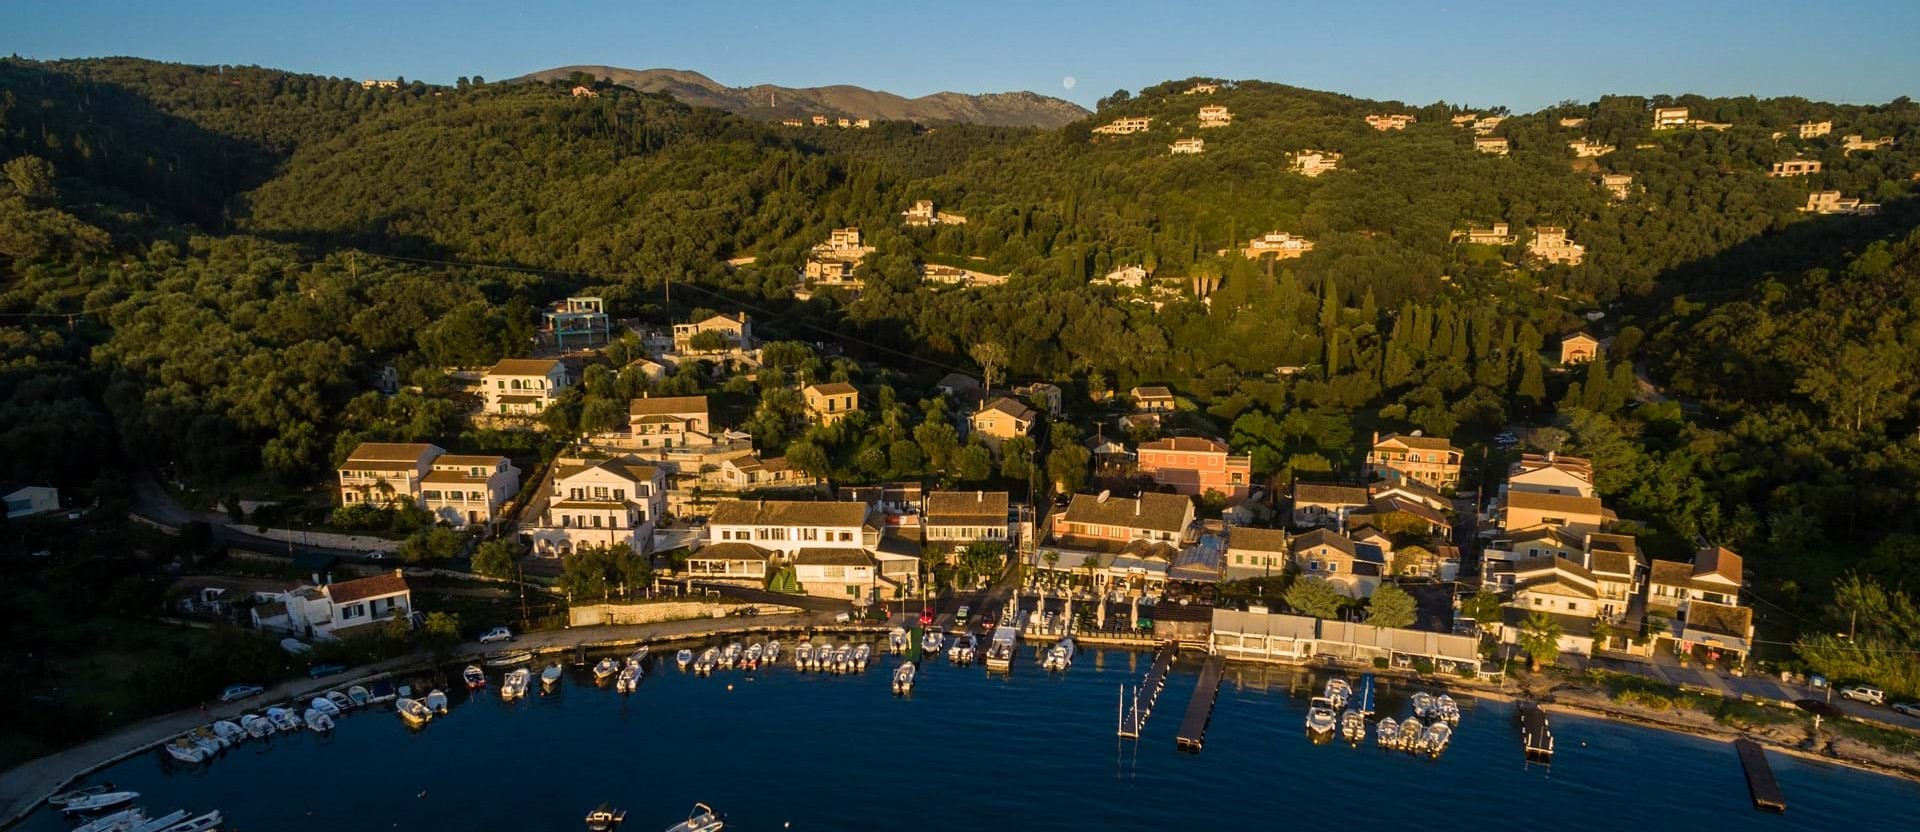 st-stephano-sunset-view-aerial